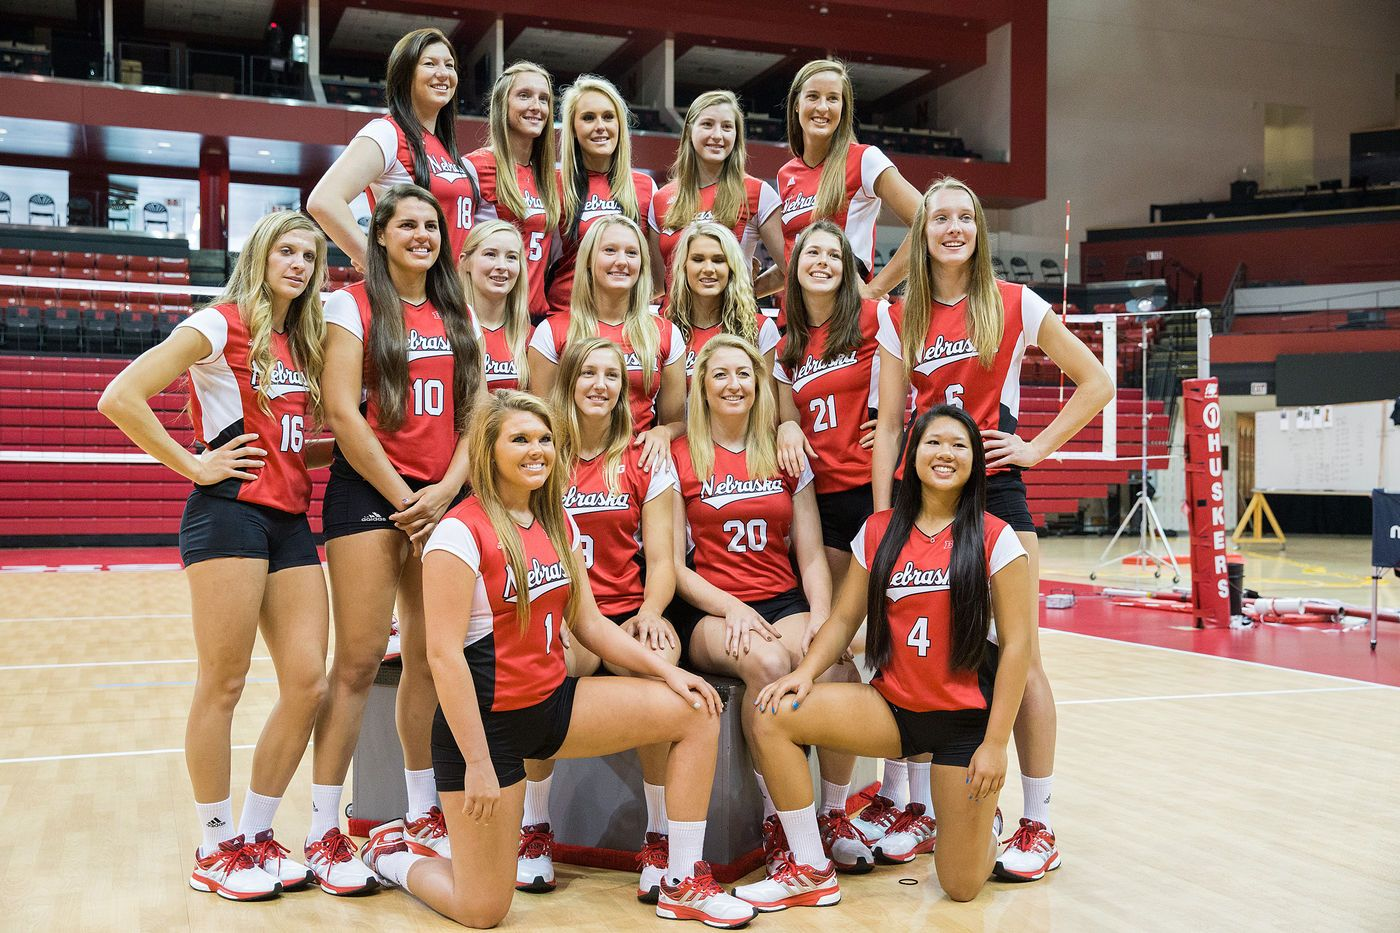 University Of Nebraska Volleyball Photo Day Volleyball Photos Volleyball Inspiration Women Volleyball